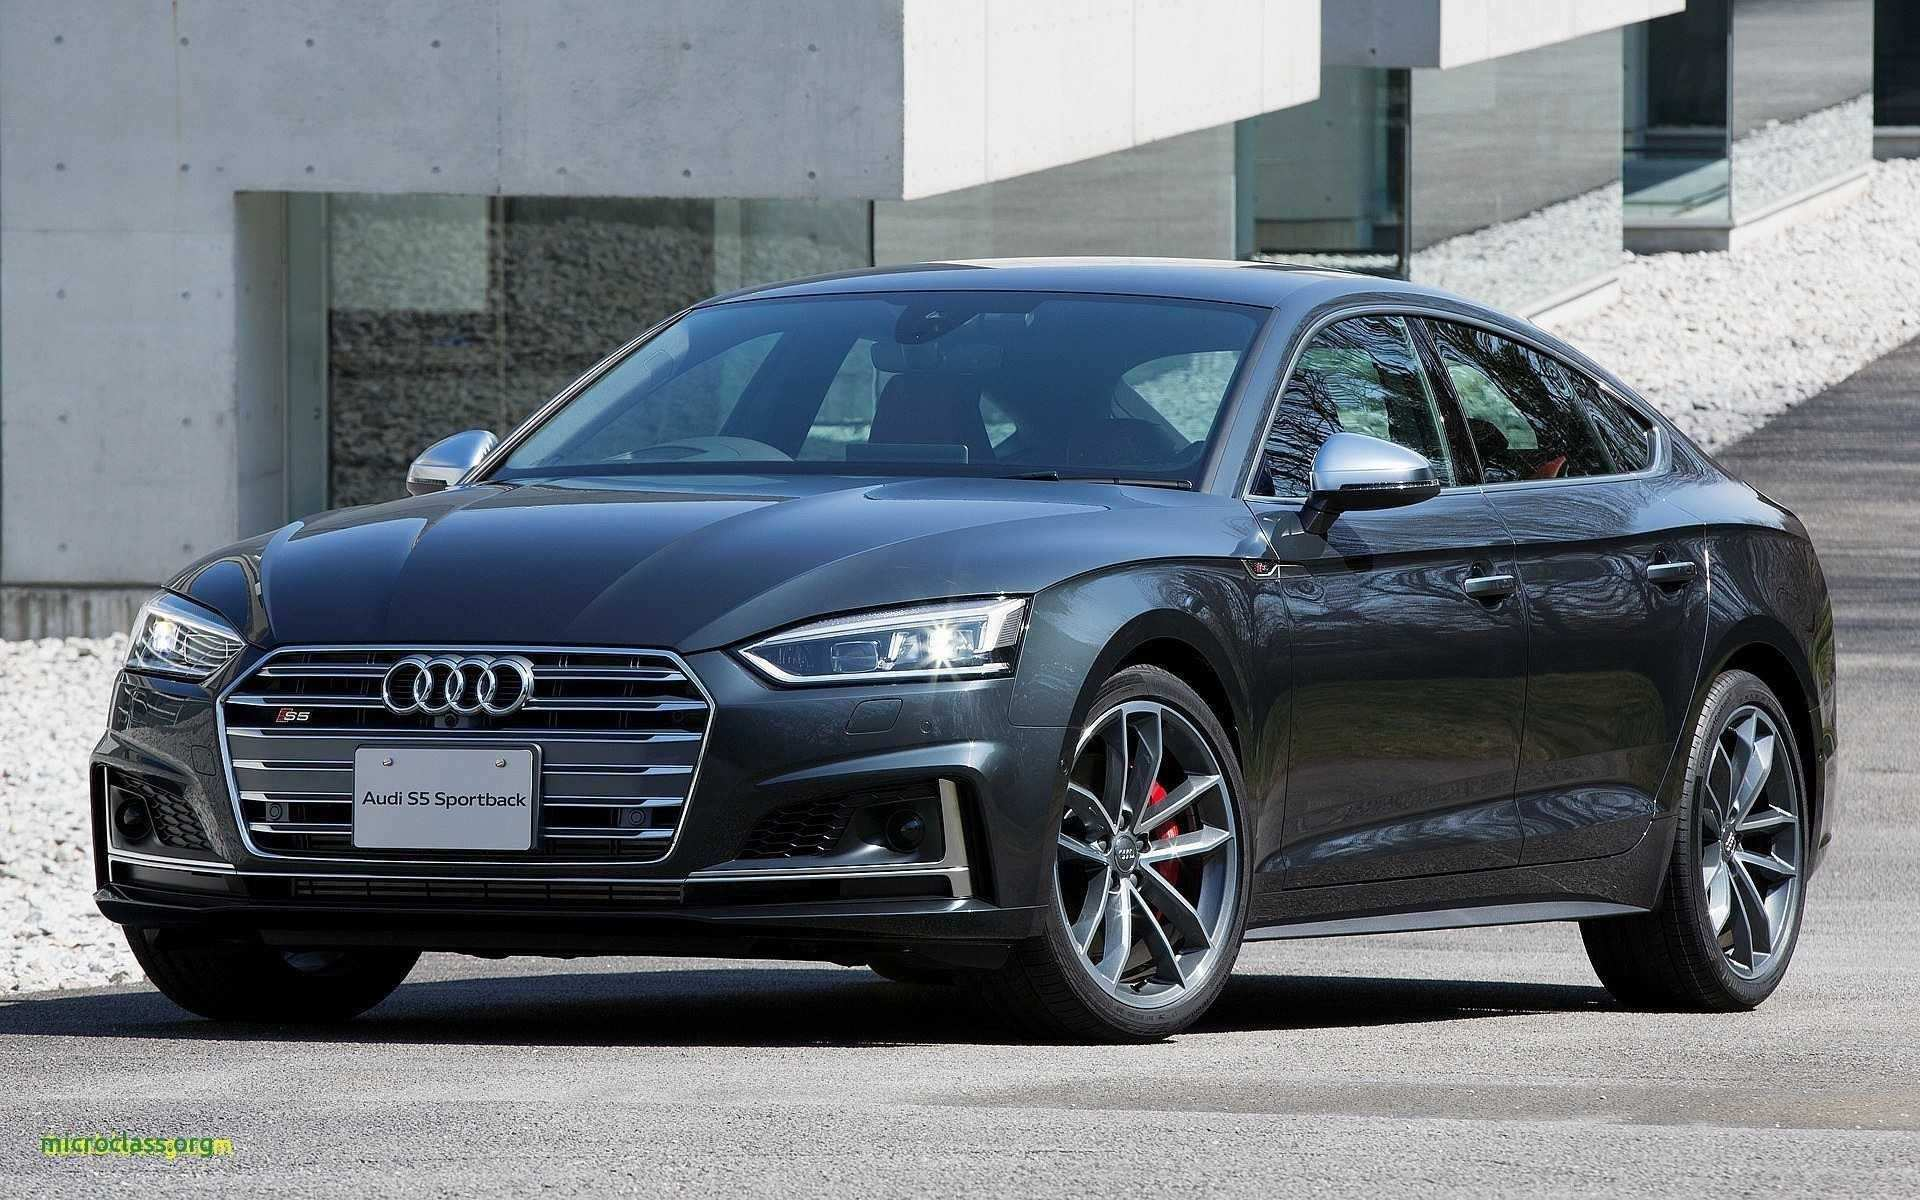 75 All New Audi Sq5 2019 Order Guide New Release Release with Audi Sq5 2019 Order Guide New Release